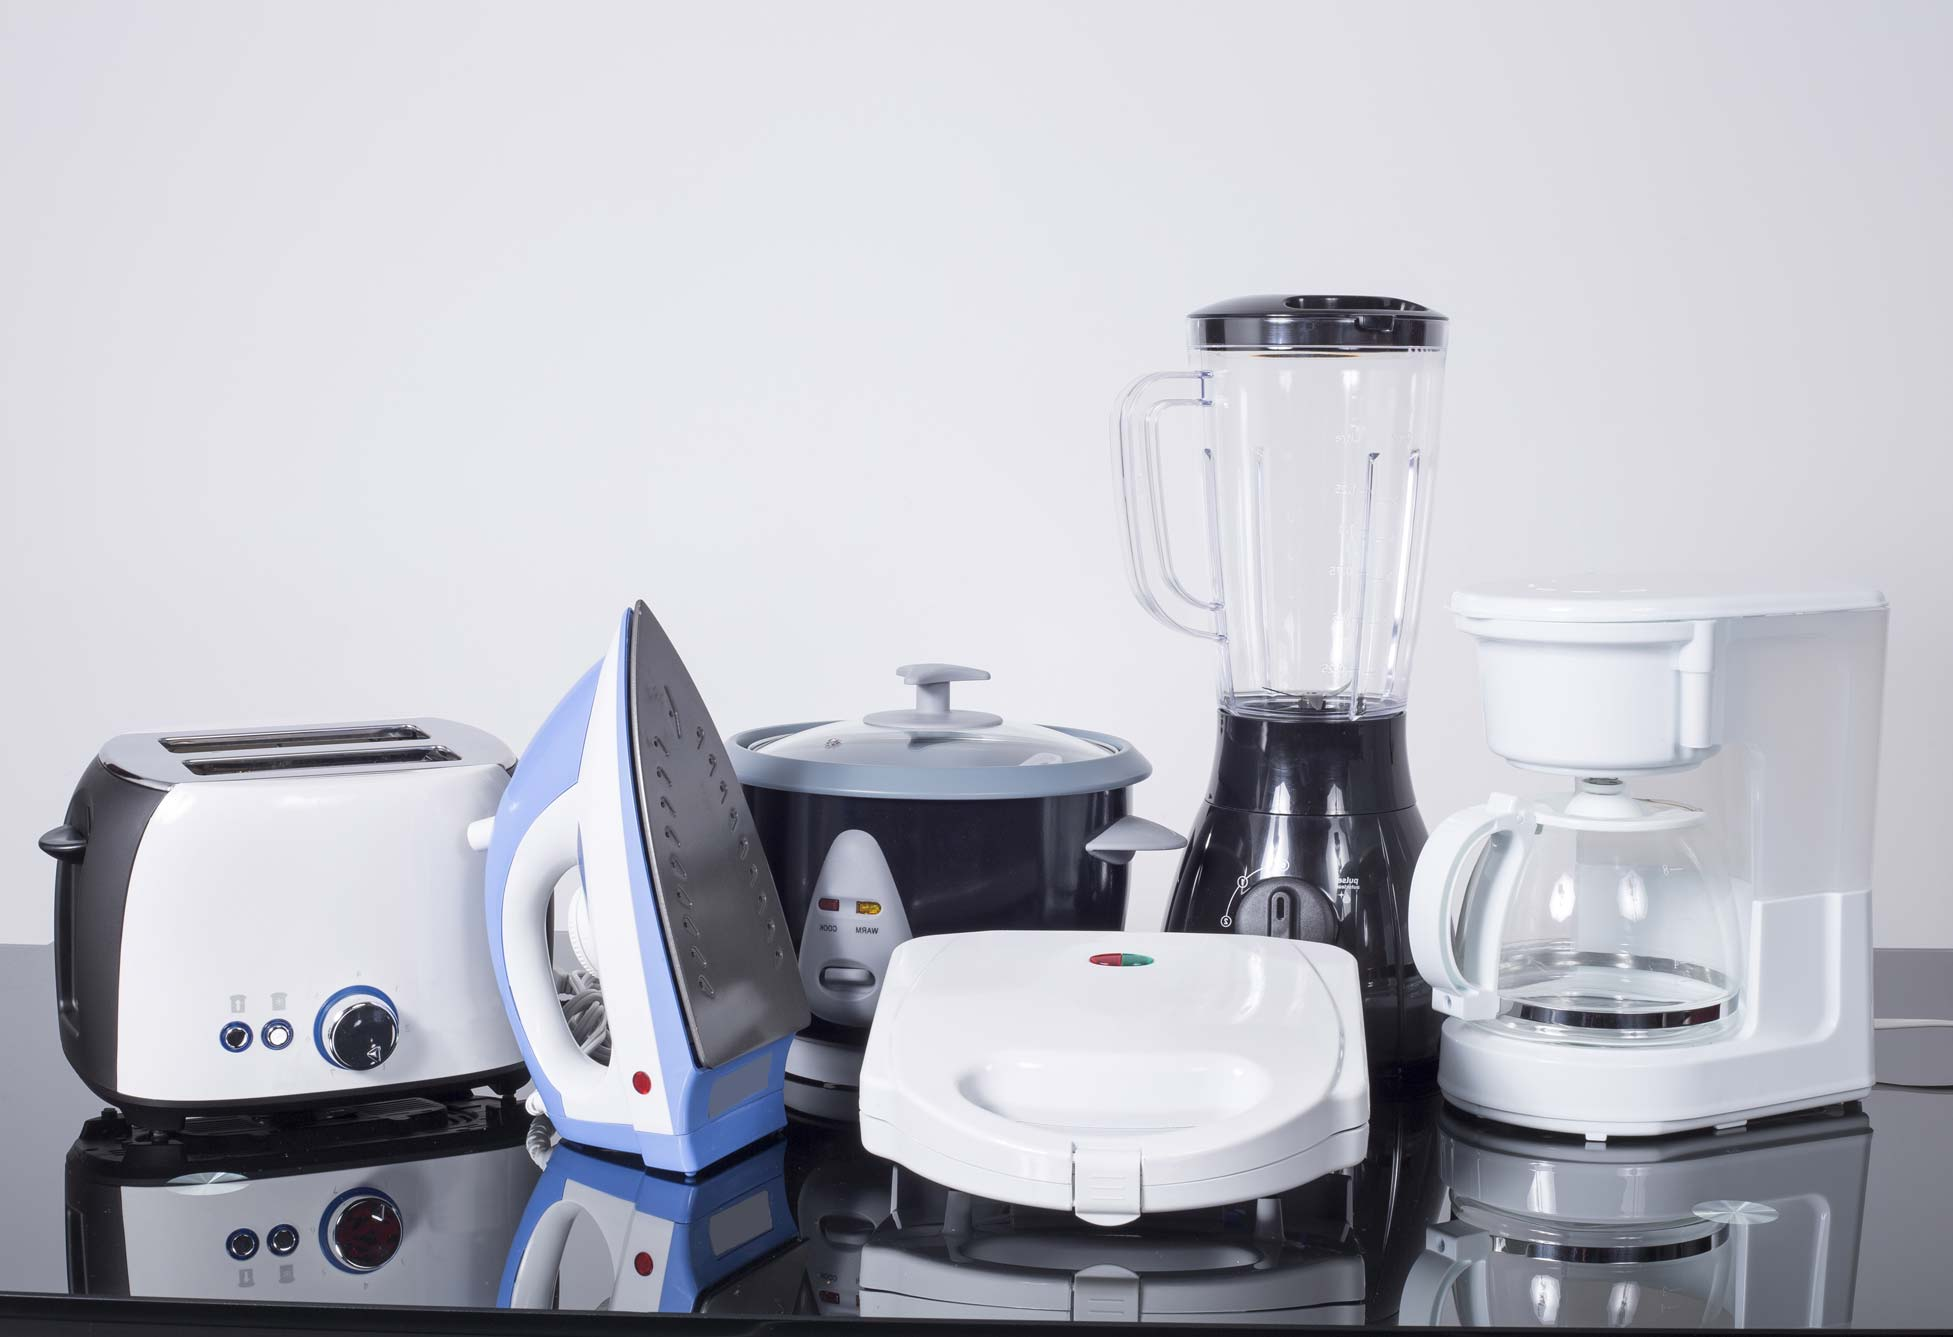 Home Appliances: Are They Covered Under Homeowners Insurance